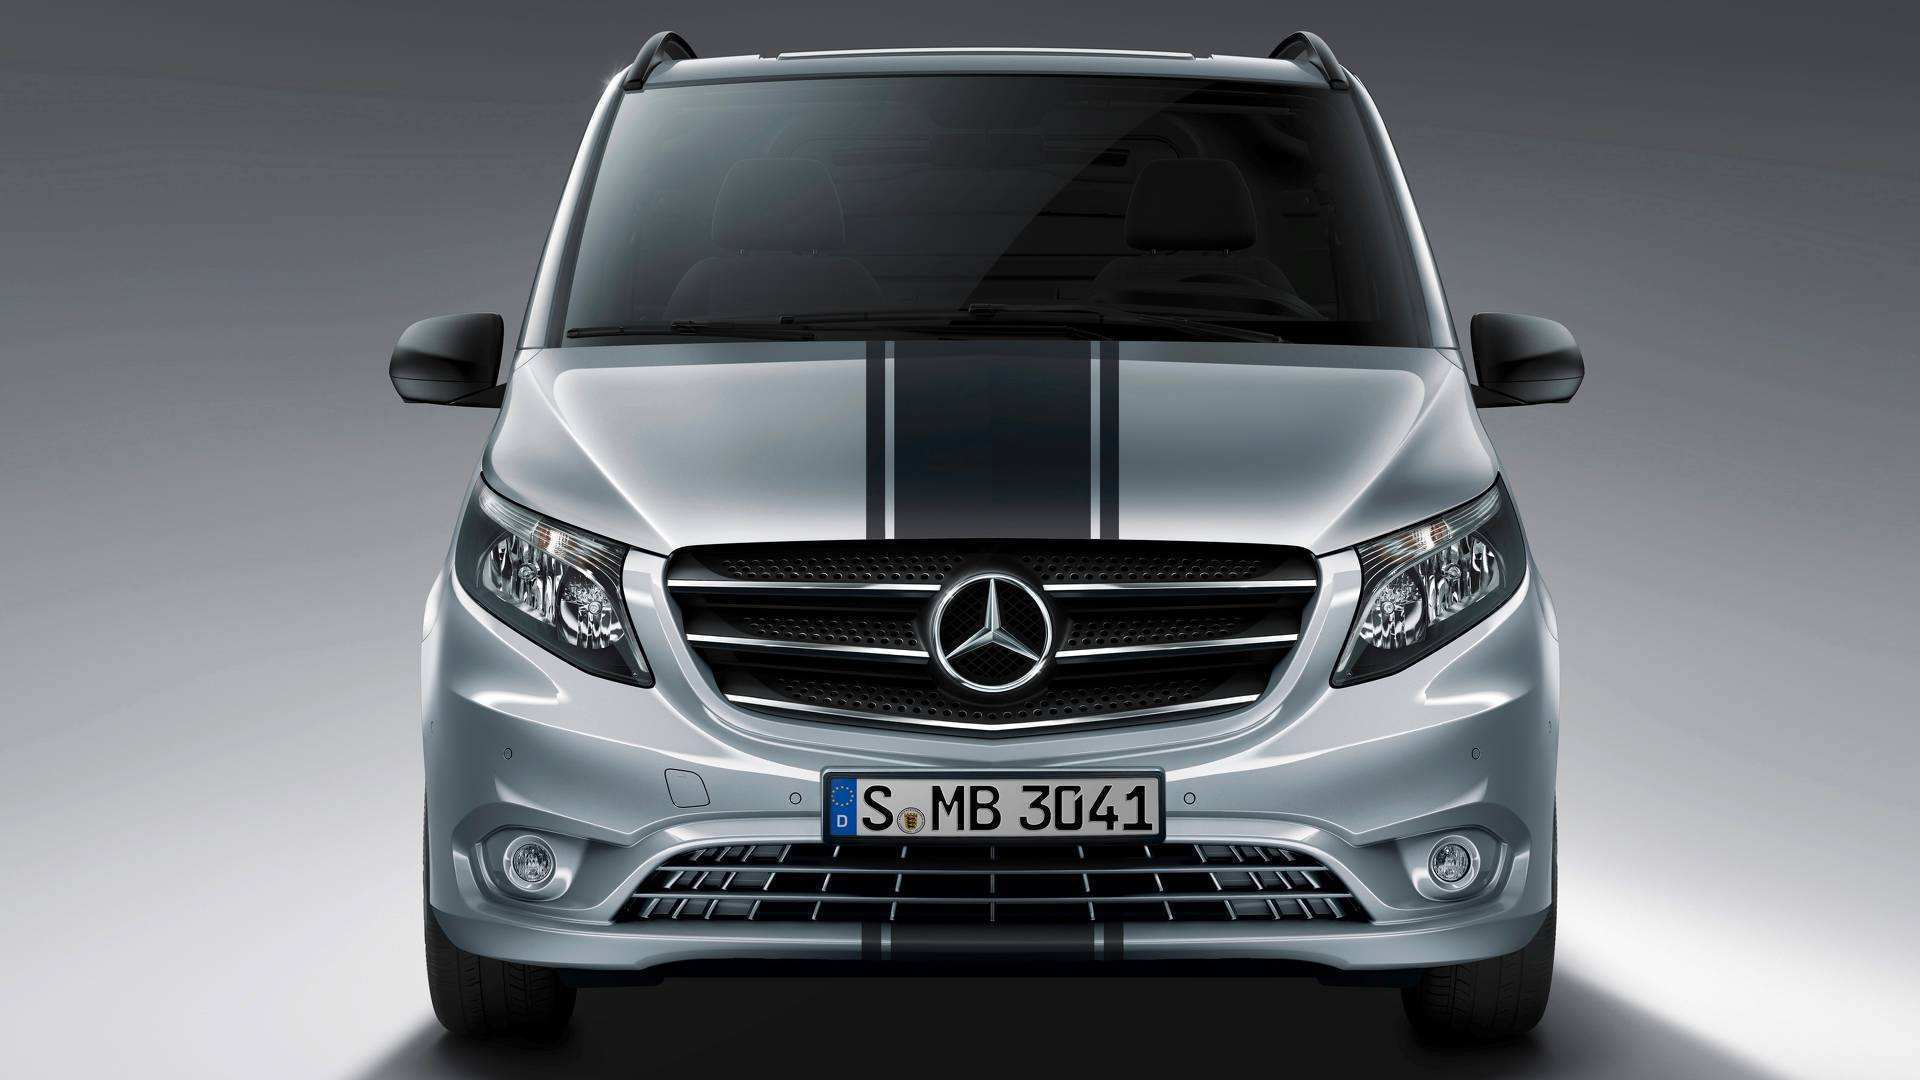 87 Best Review Mercedes Vito 2019 New Review for Mercedes Vito 2019